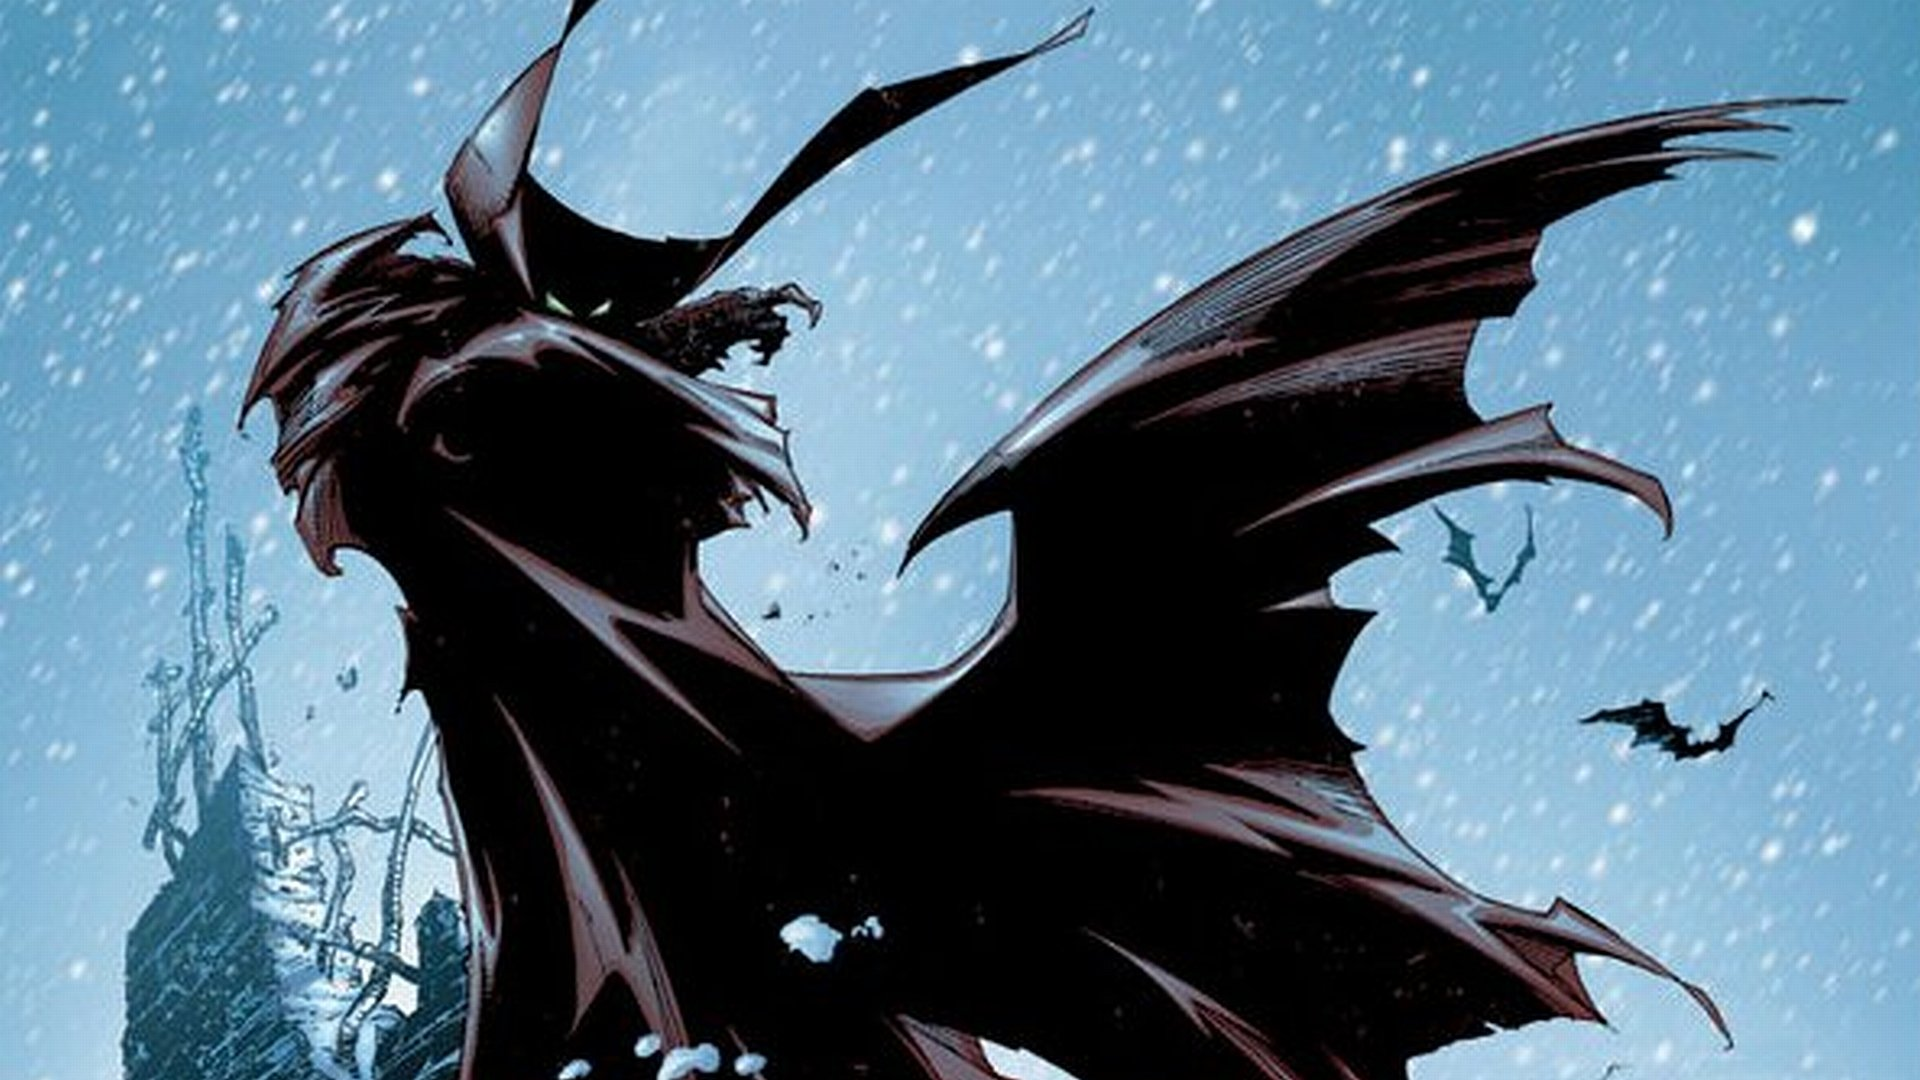 Spawn Wallpaper Hd 1920x1080: Spawn Full HD Wallpaper And Background